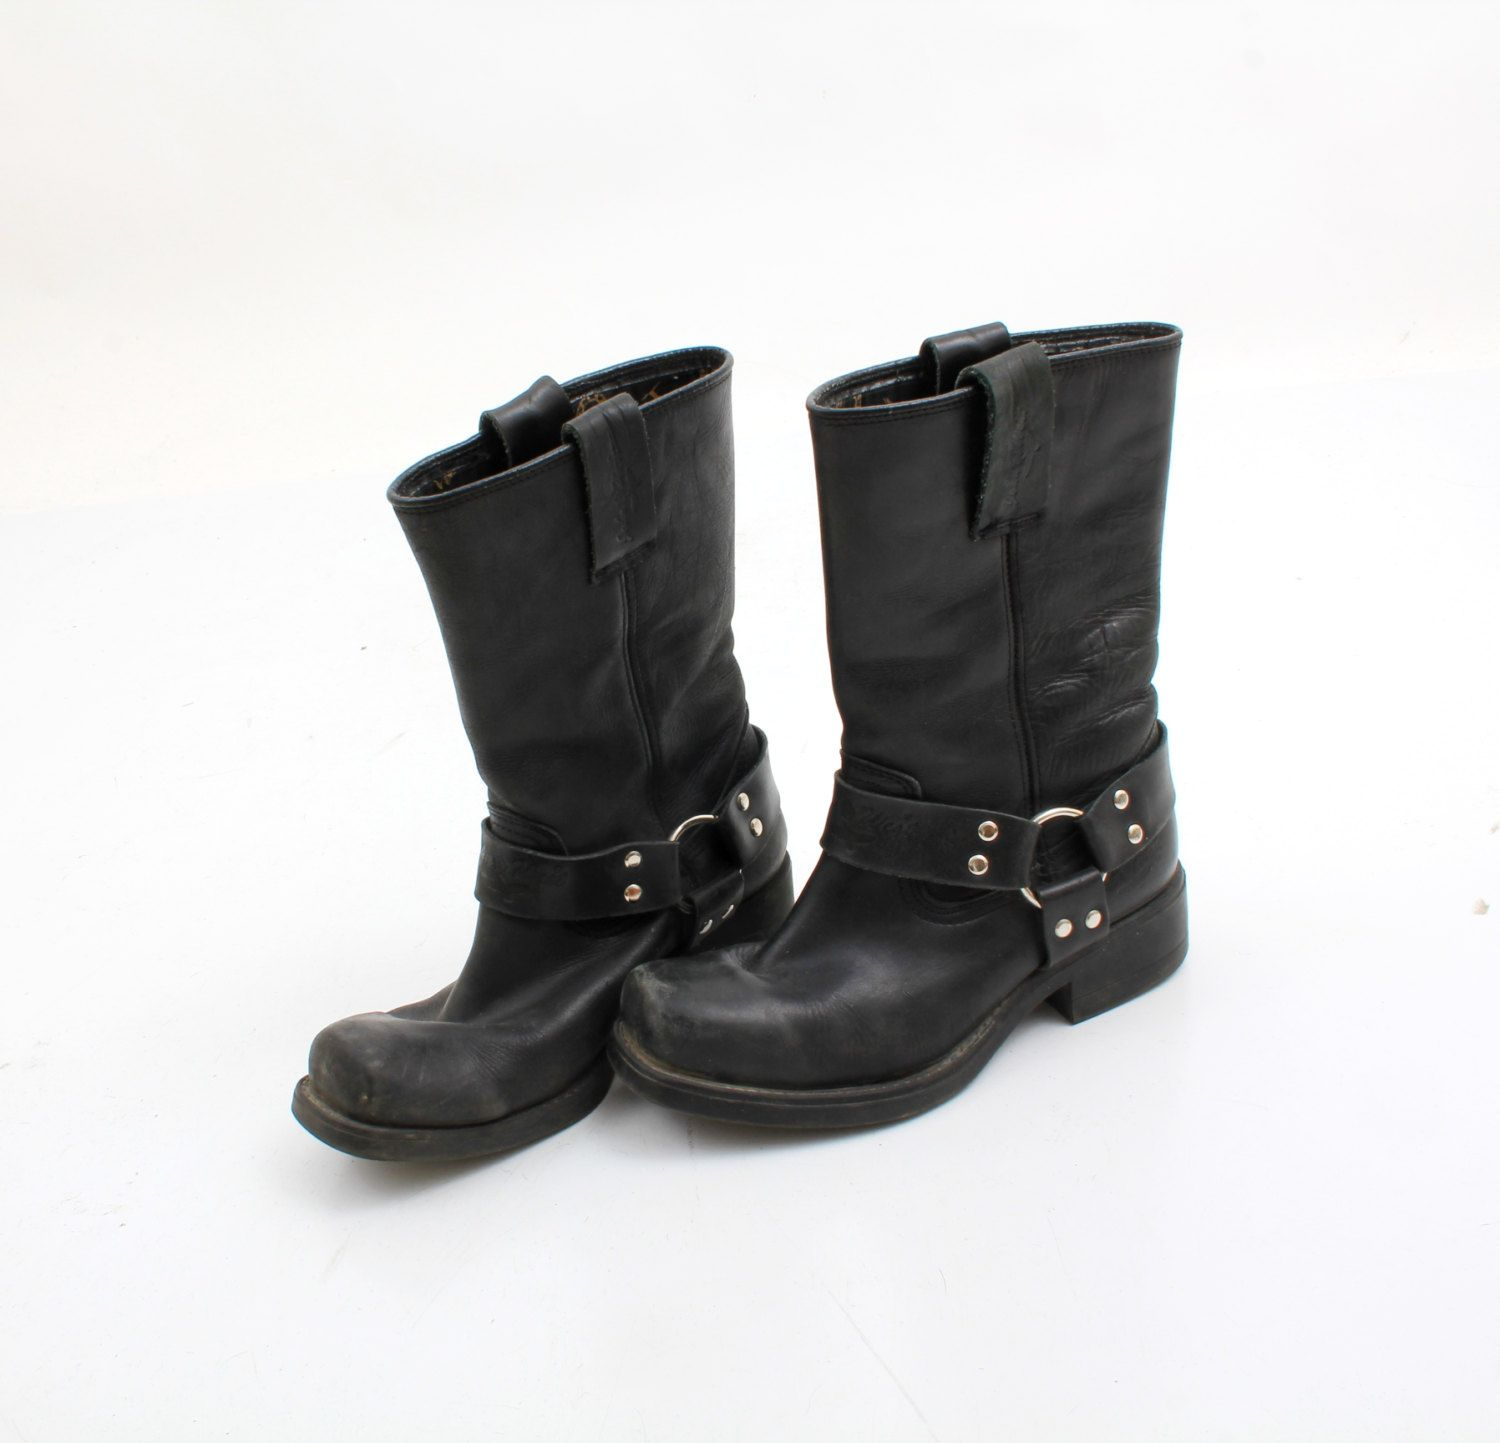 a645bdffac4 Vintage John West Black Real Leather Motorcyle Boots Size EU40 UK7 ...